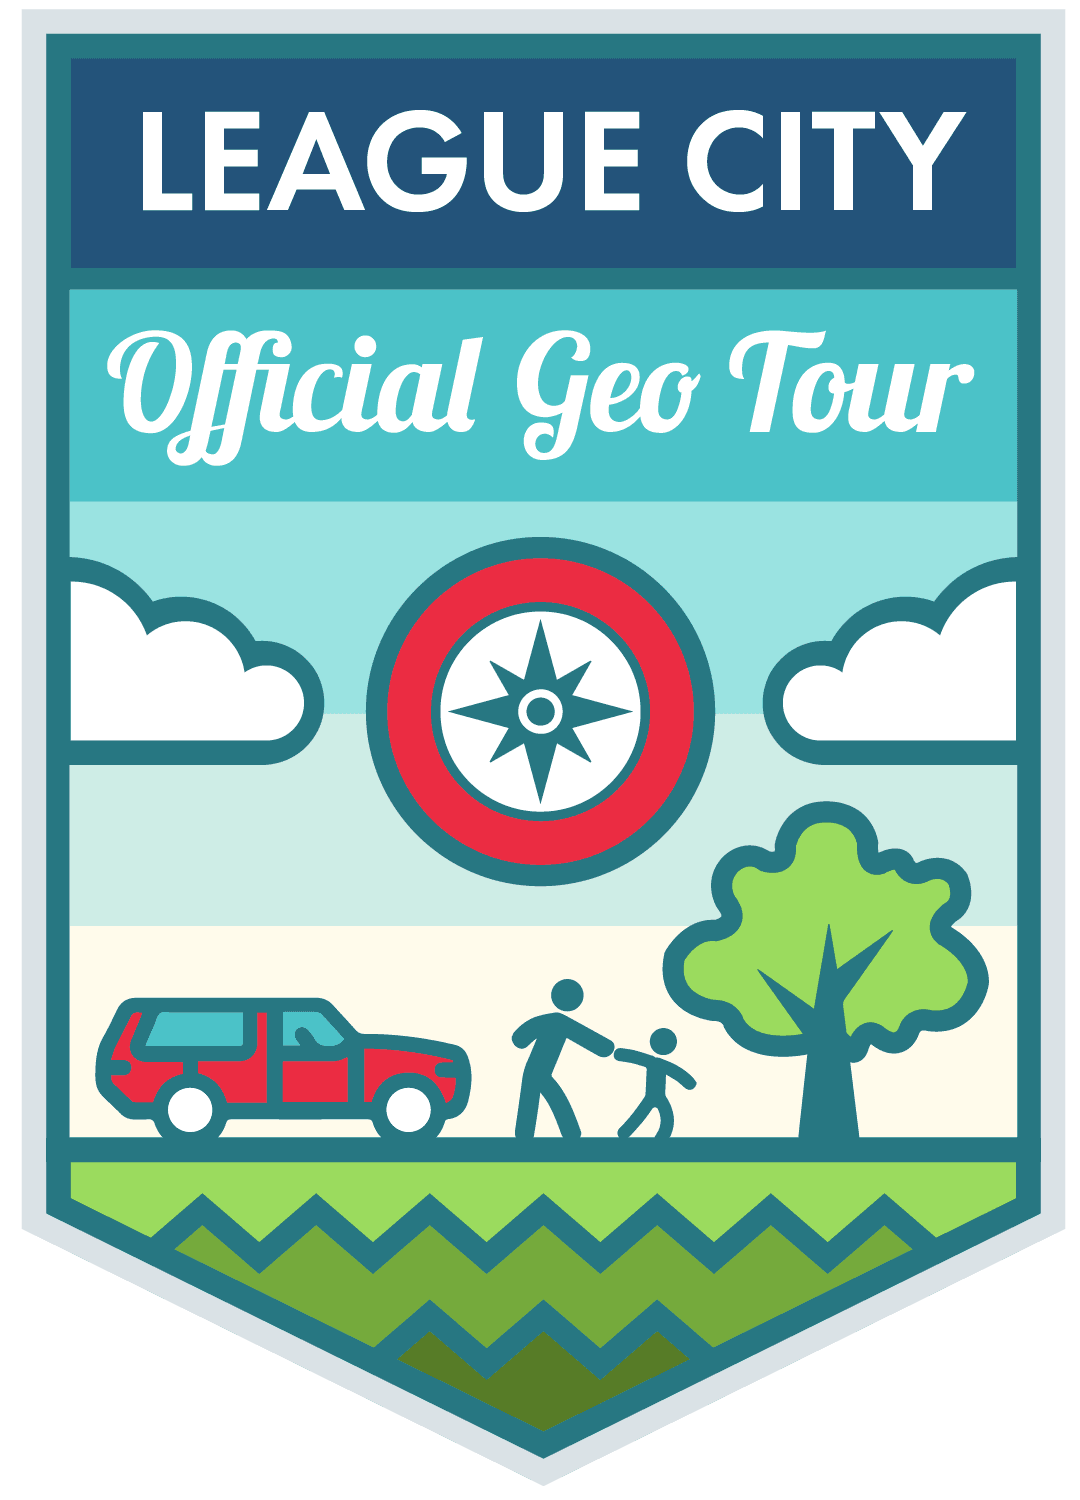 league city geotour logo